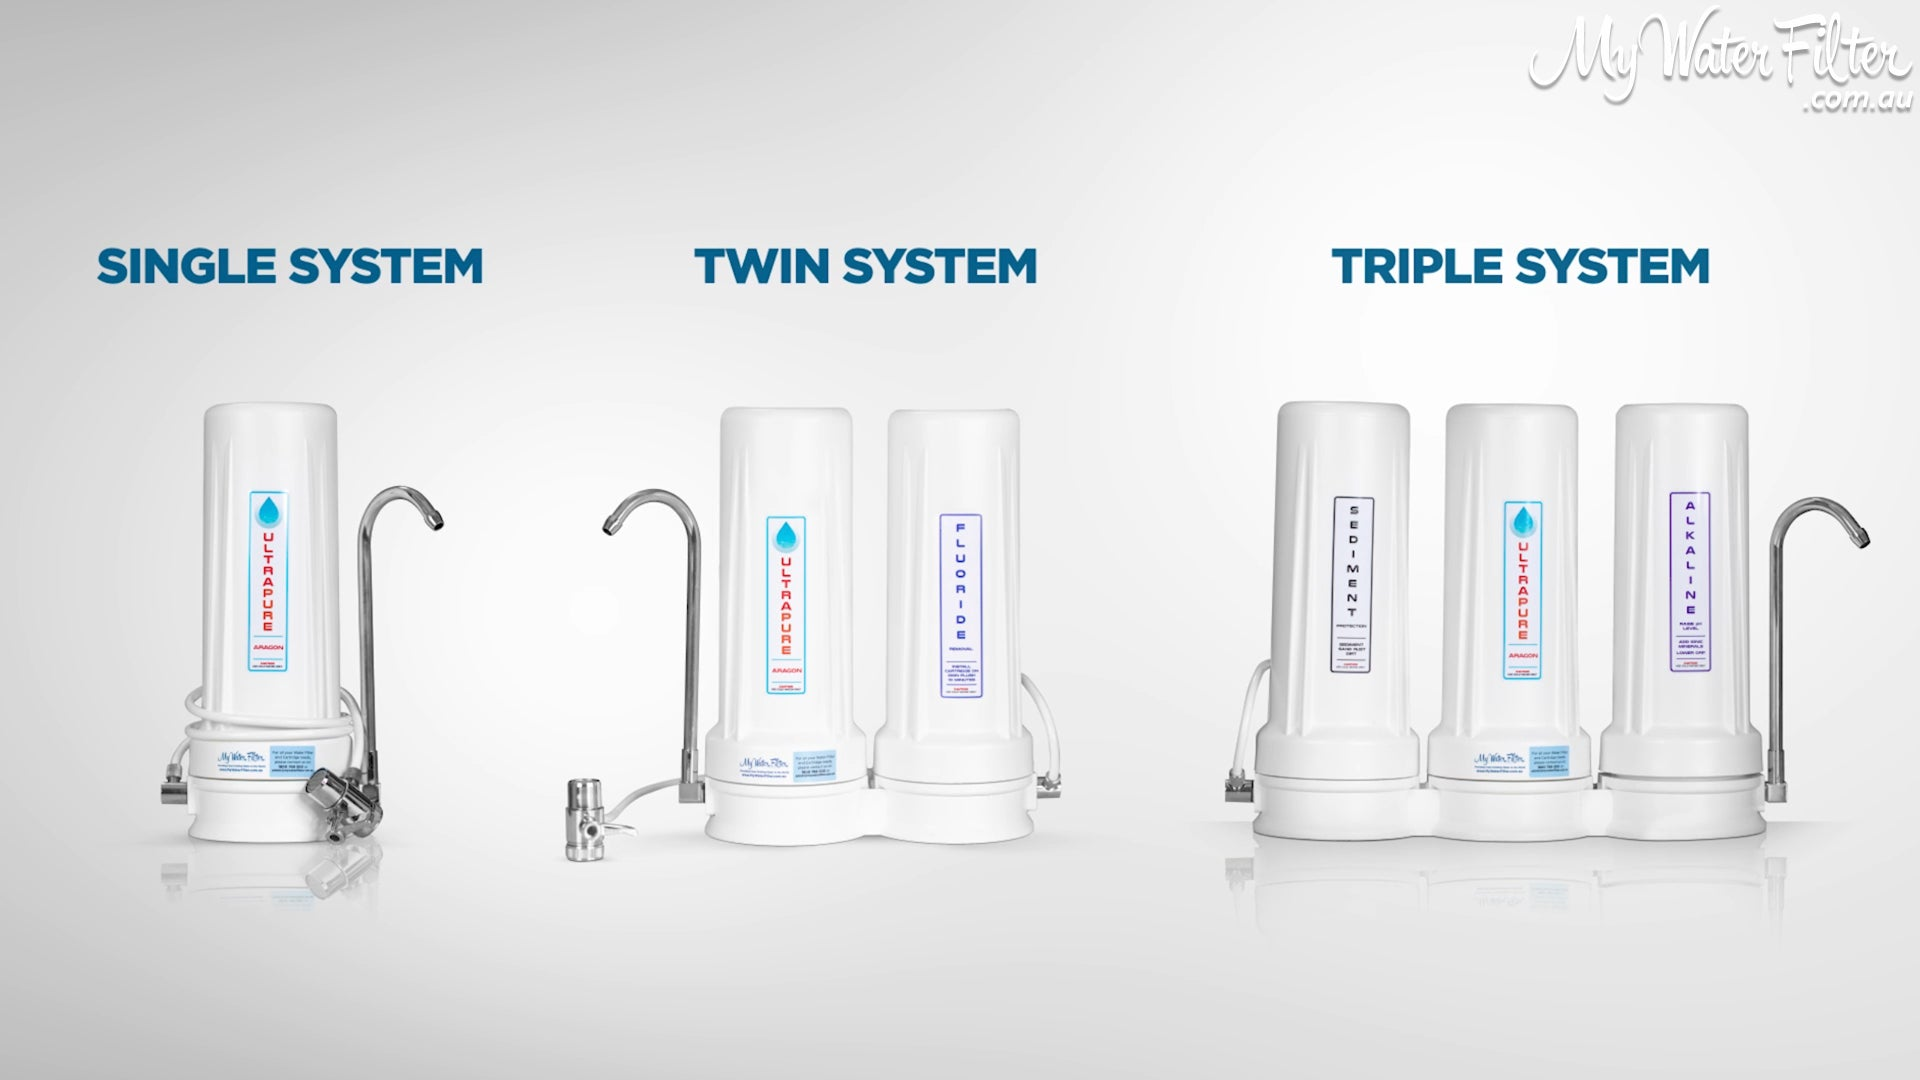 Benchtop water filter systems